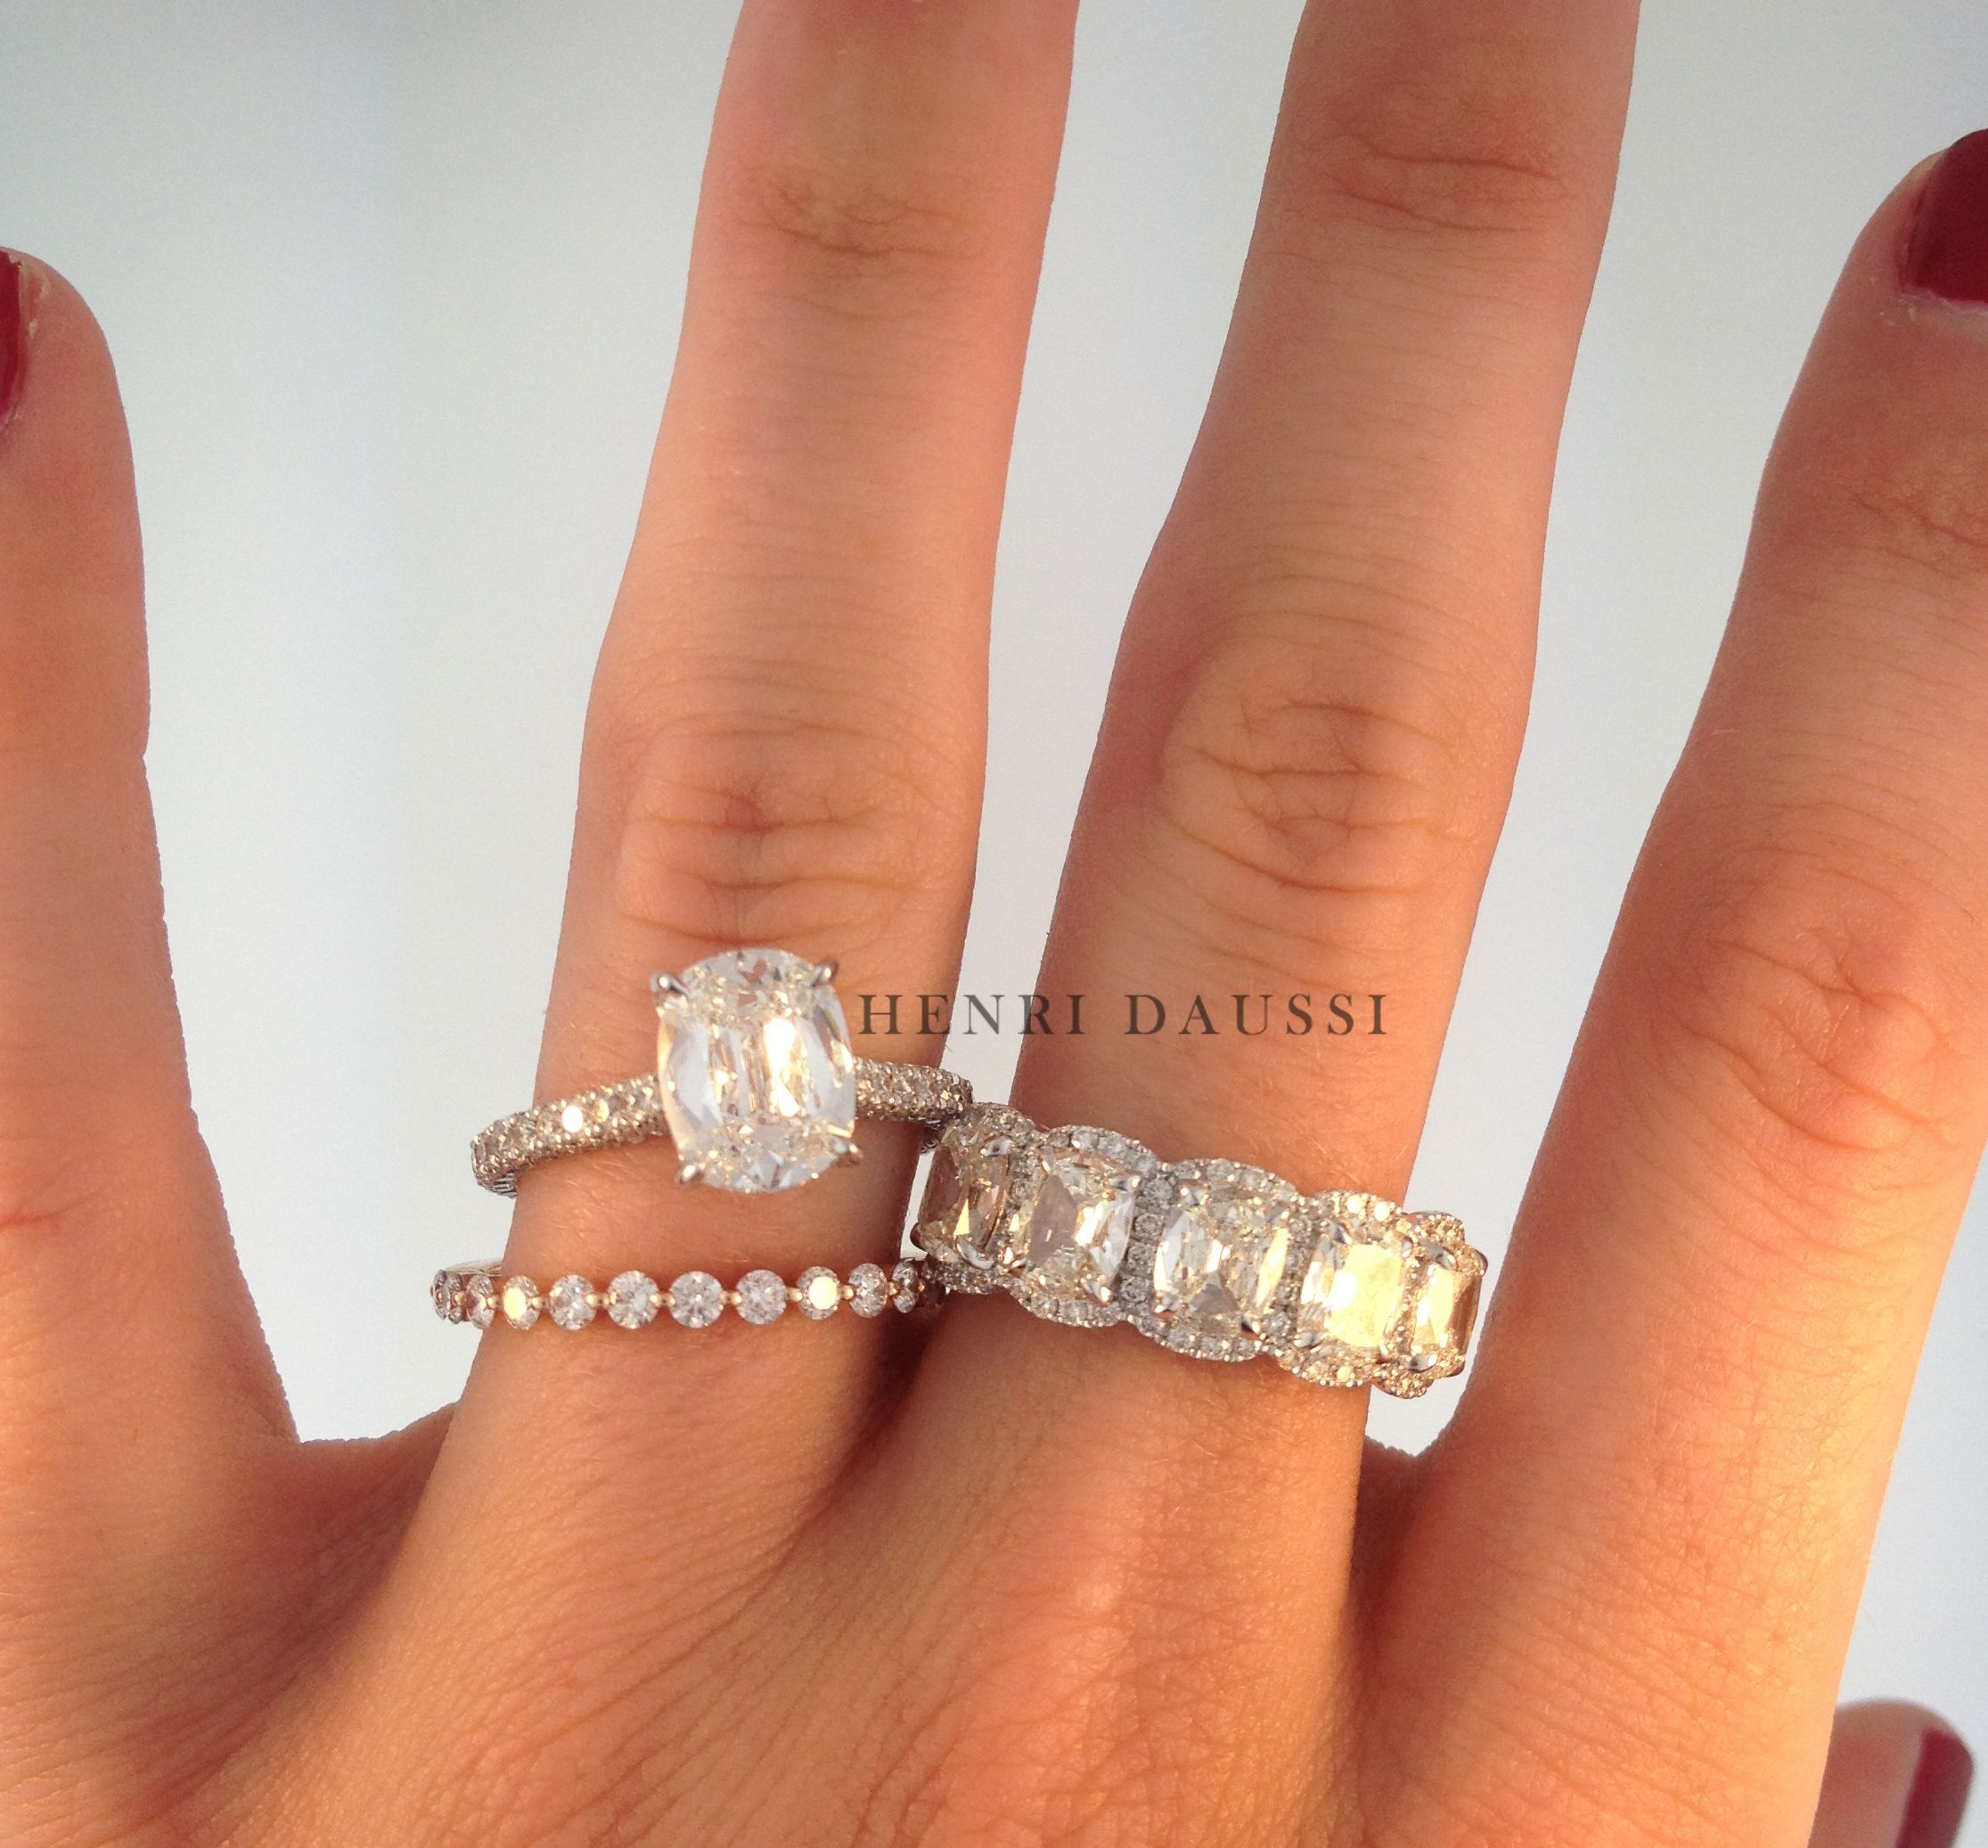 """Solitaire Engagement Ring, Rose Gold Diamond Band And 5 Intended For 2020 Diamond Seven Stone """"x"""" Anniversary Bands In Sterling Silver And Rose Gold (View 21 of 25)"""